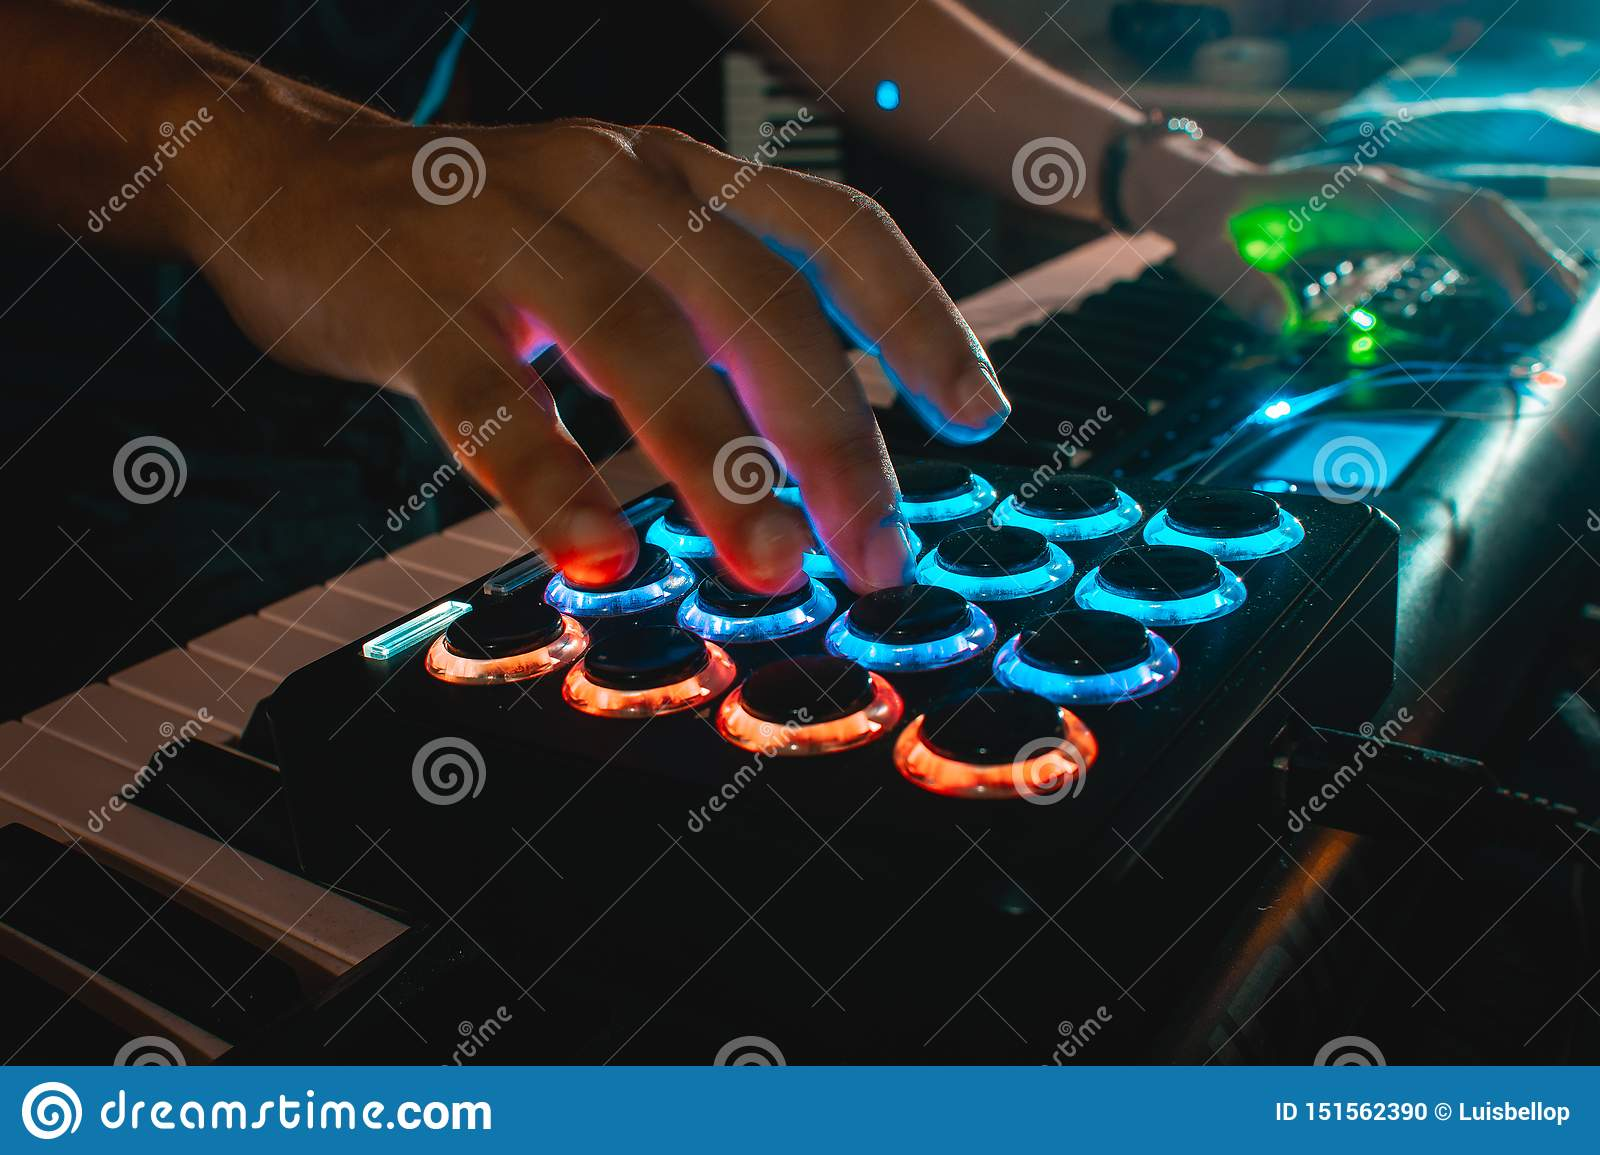 Musician hands playing a midi pad controller